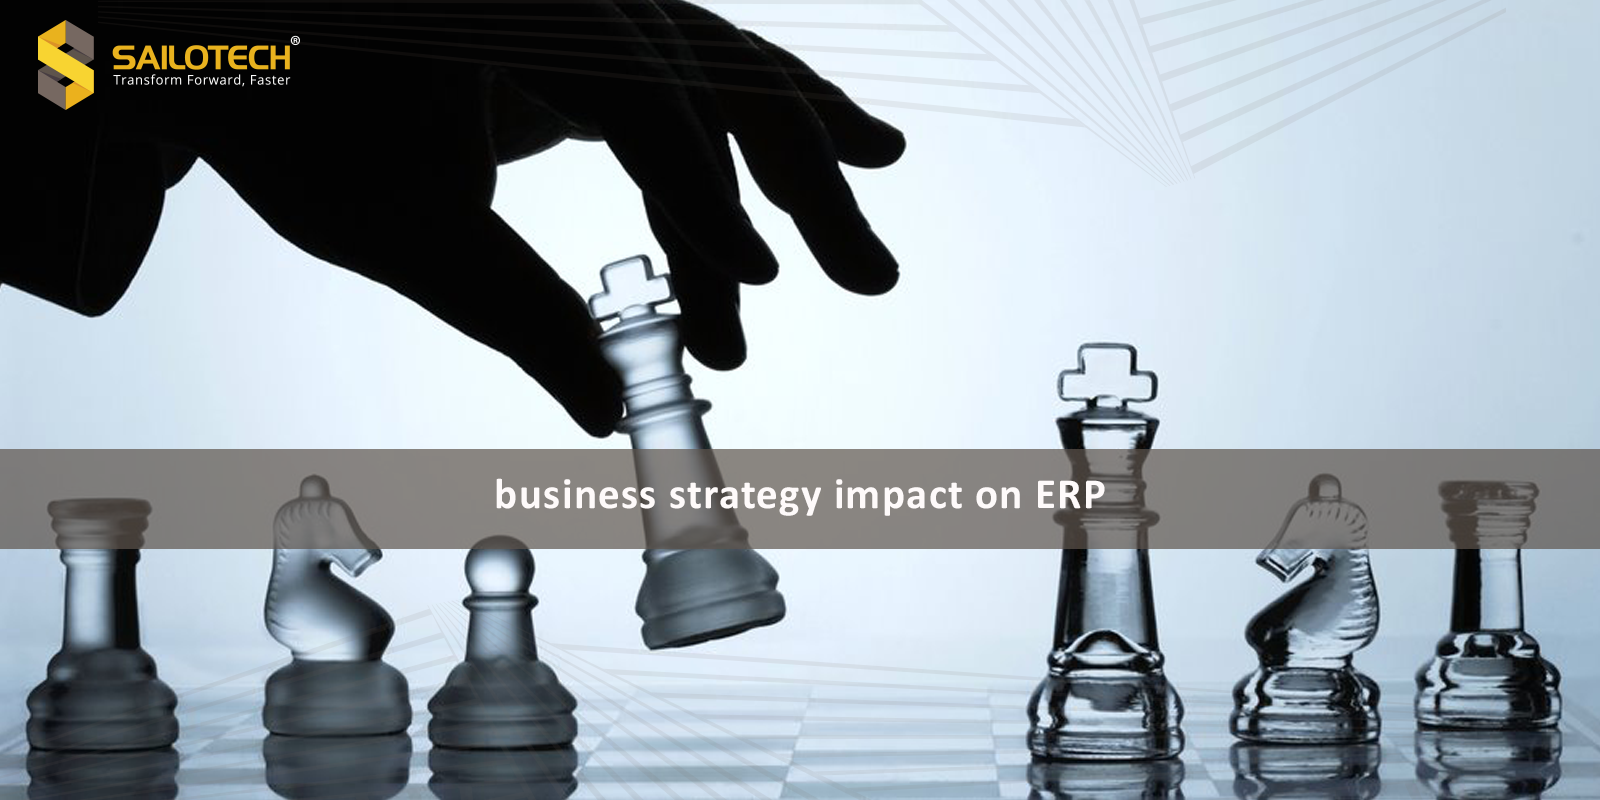 Business strategy impact on ERP